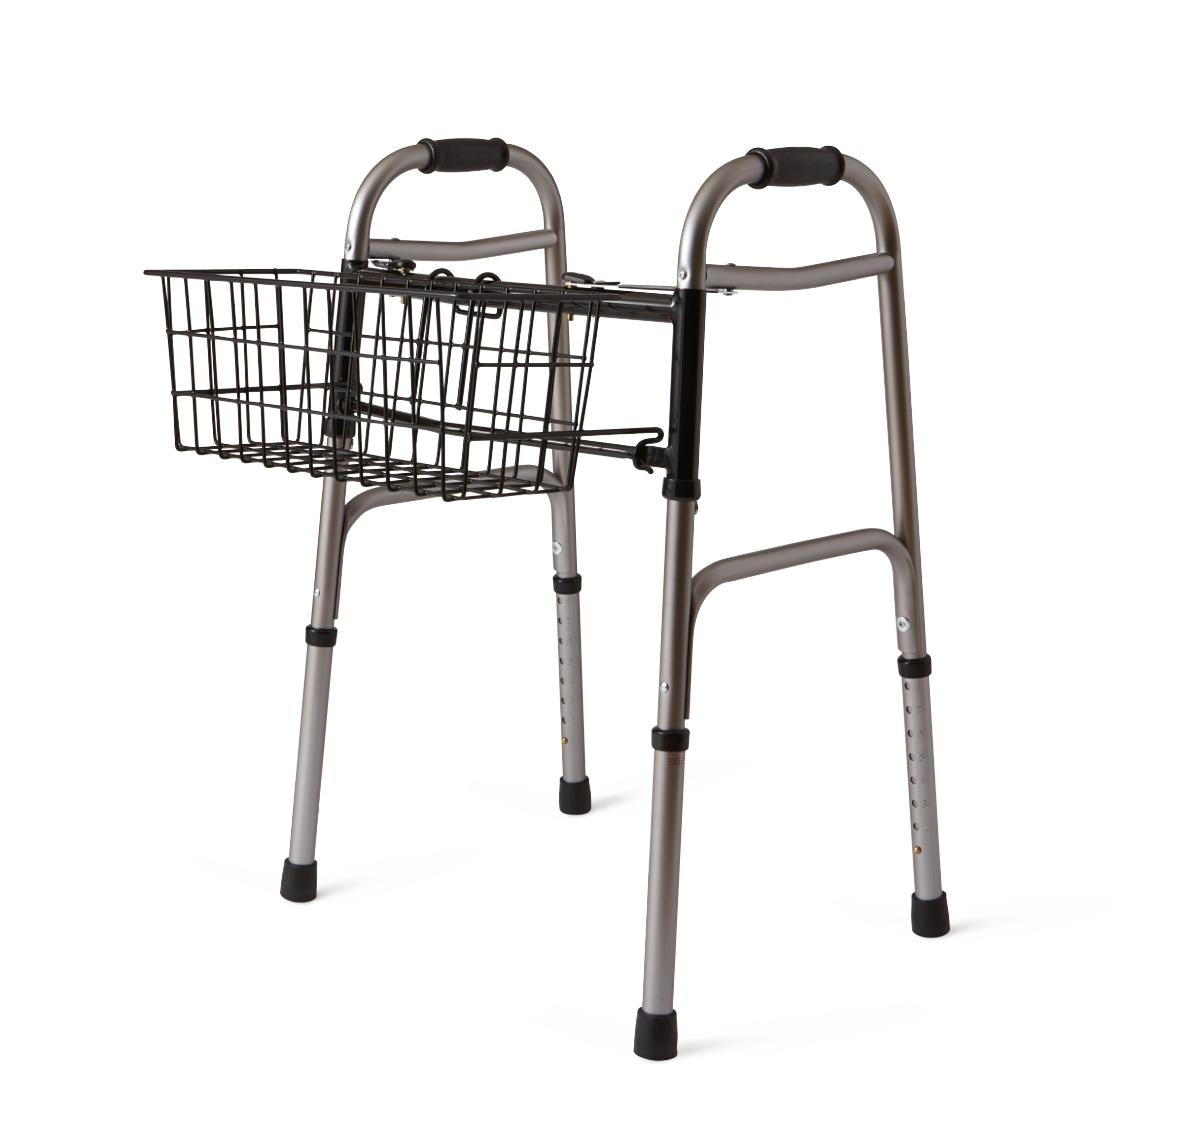 Basket for 2-Button Walkers-